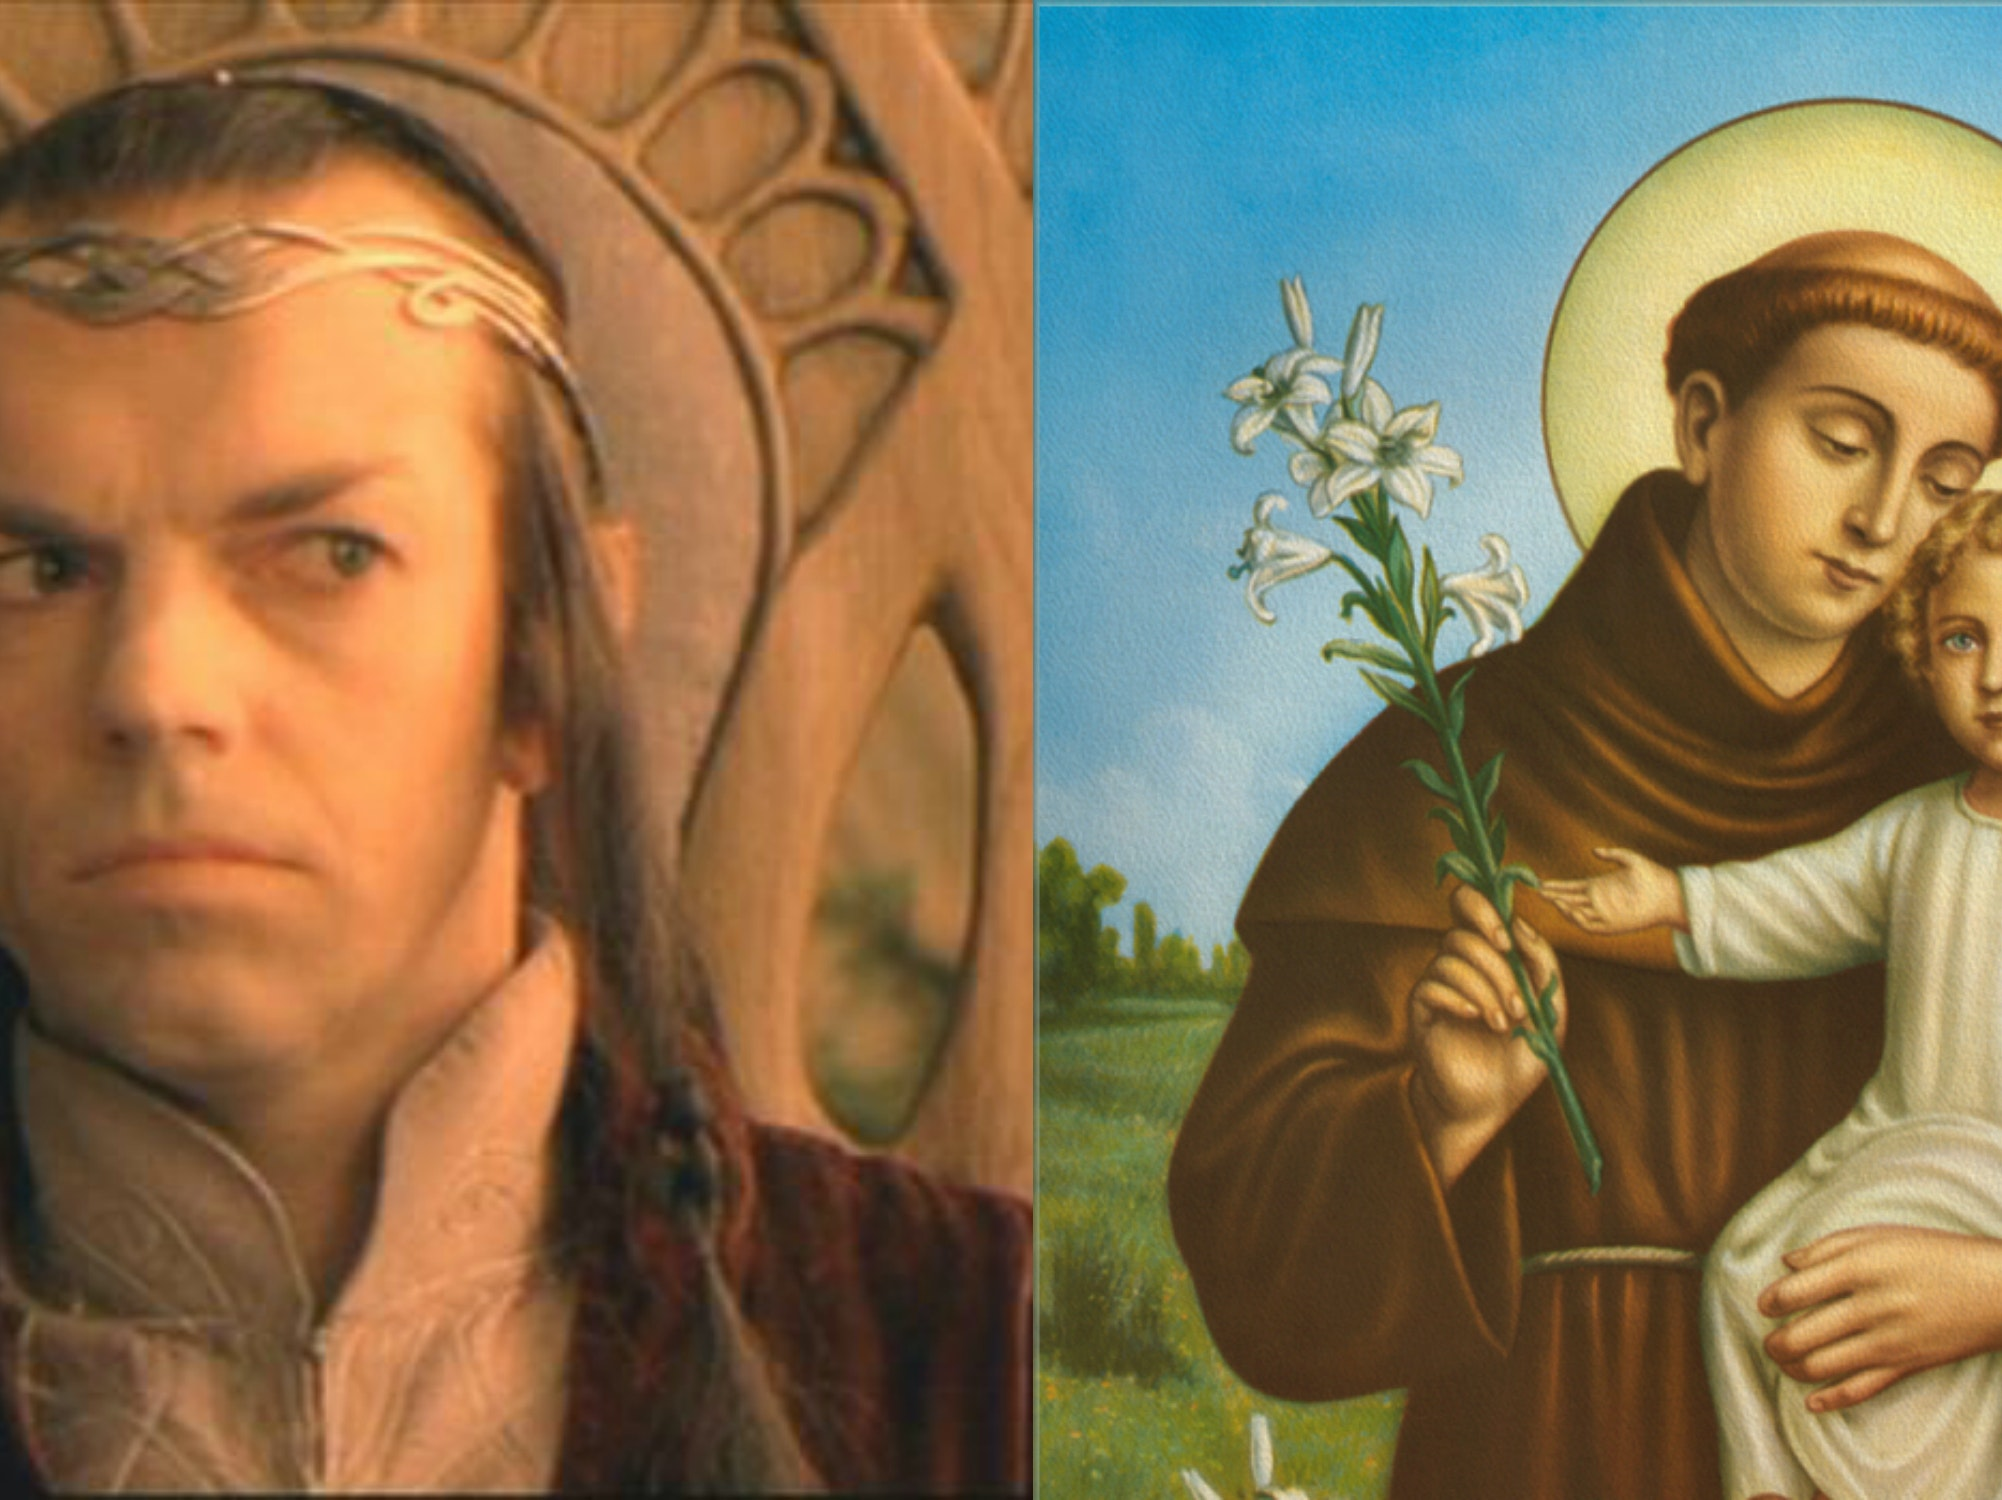 Elf Lord Elrond from 'Lord of the Rings' Mistaken for a Saint